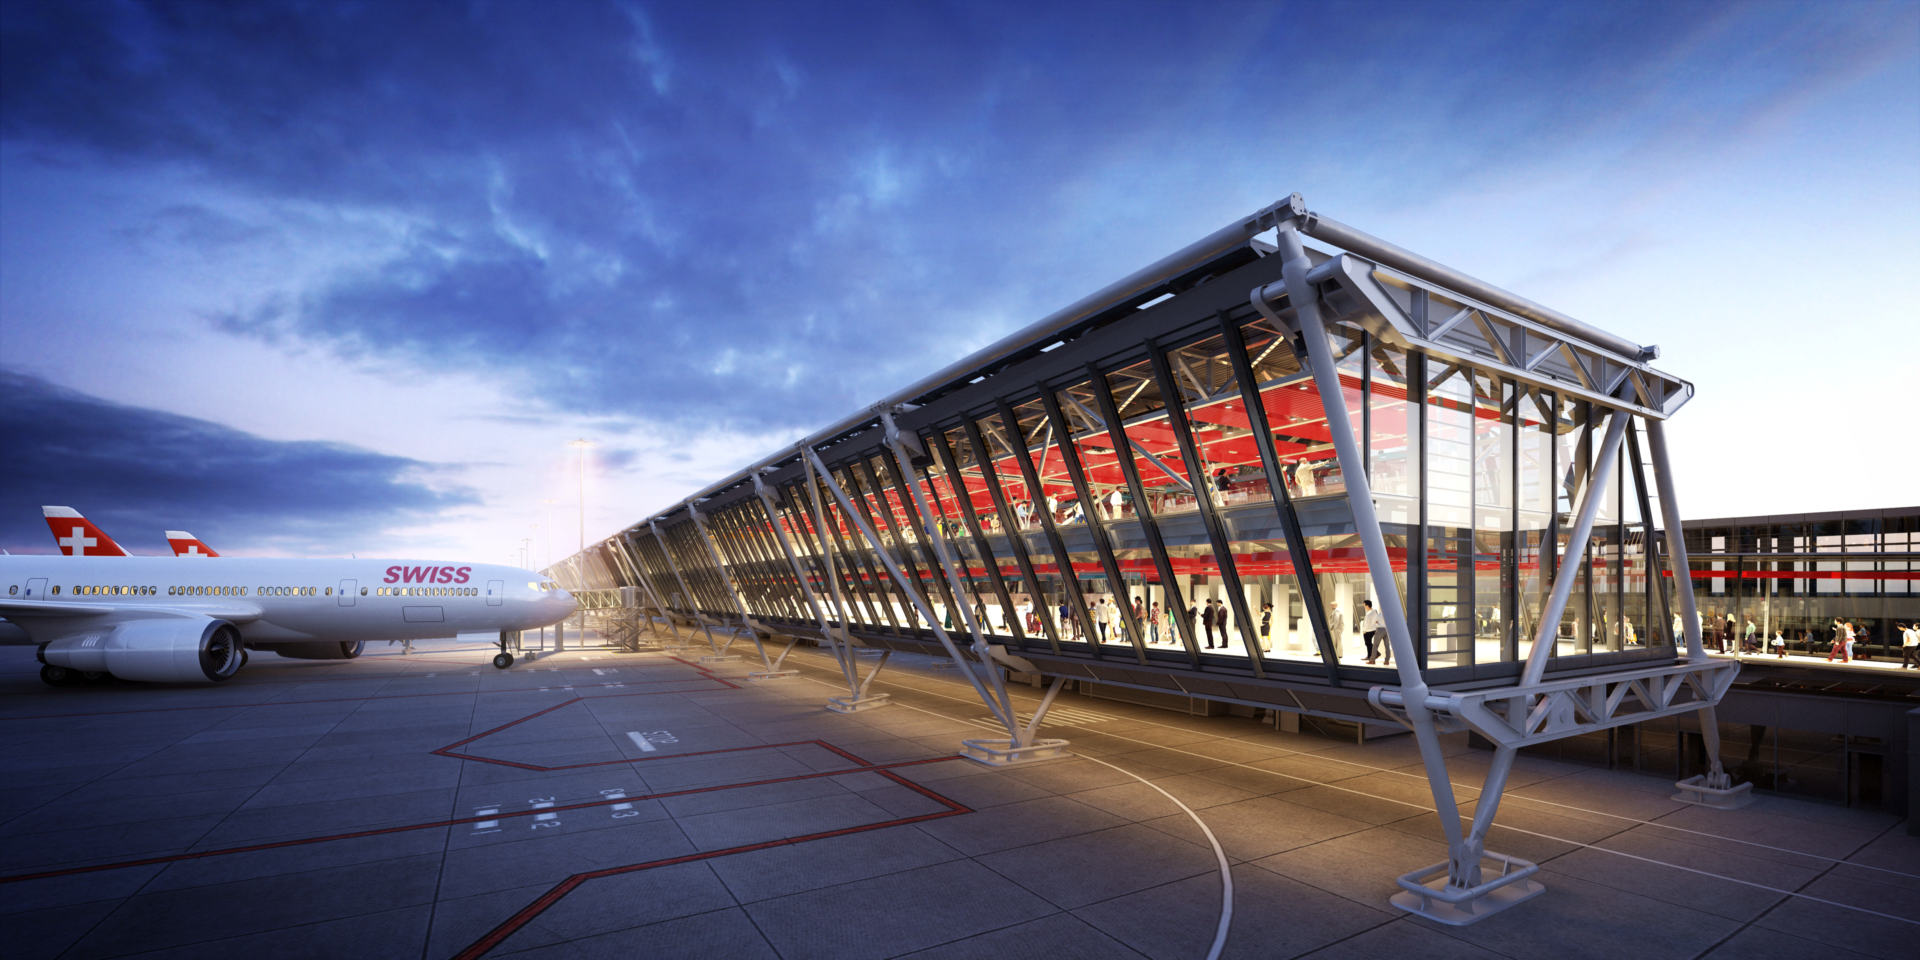 construsoftbimawards - Aeroport Geneve